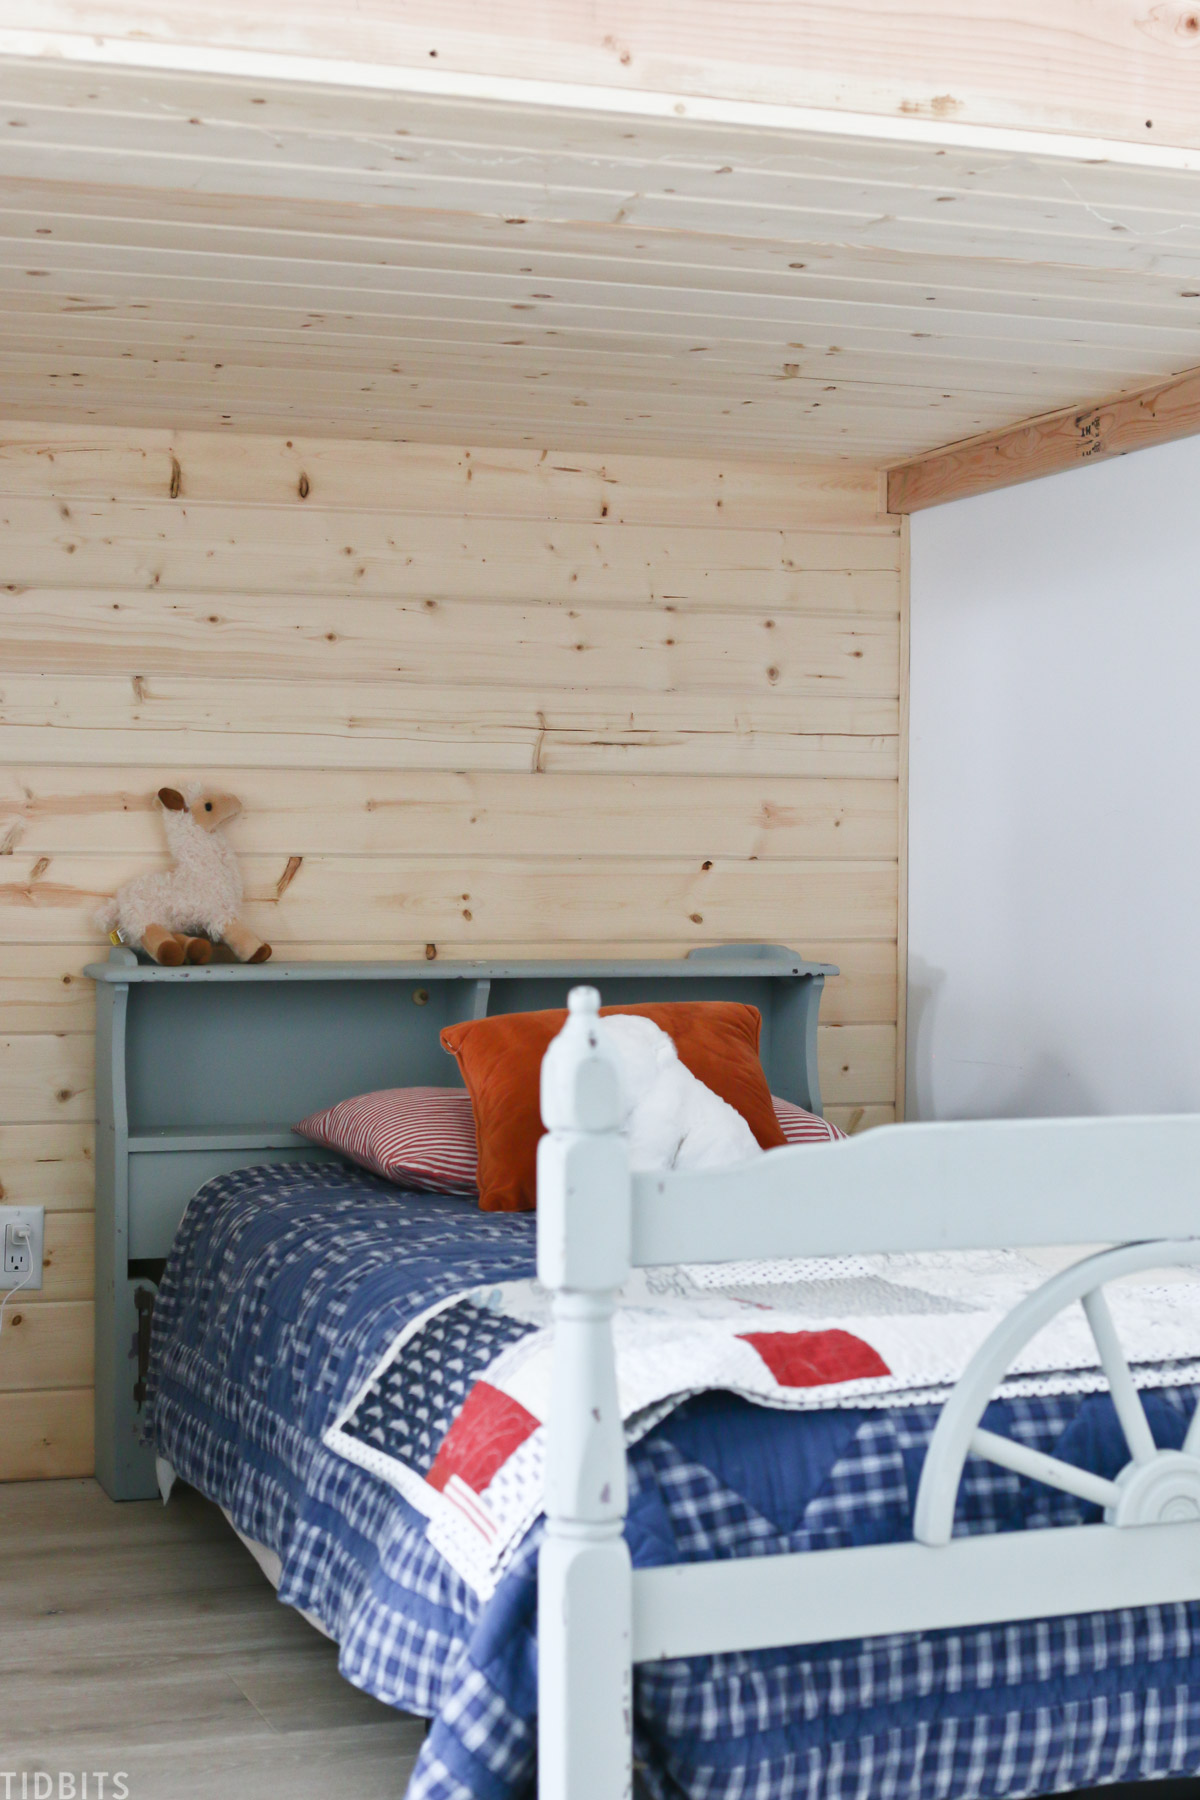 shiplap planks installed on the wall behind a bed